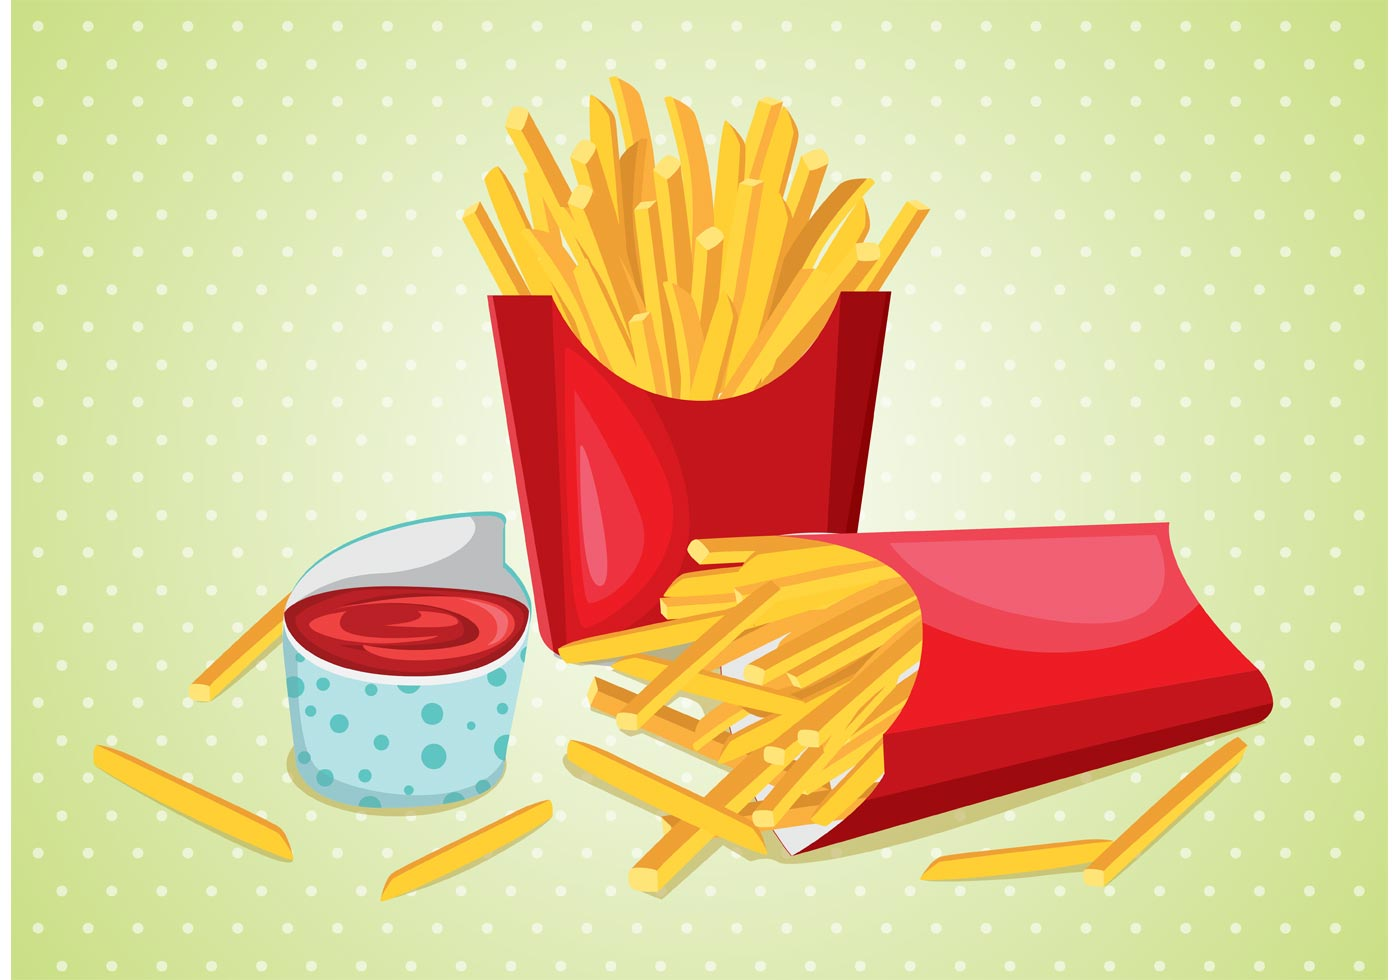 Fries with Sauce Vector - Download Free Vectors, Clipart ...